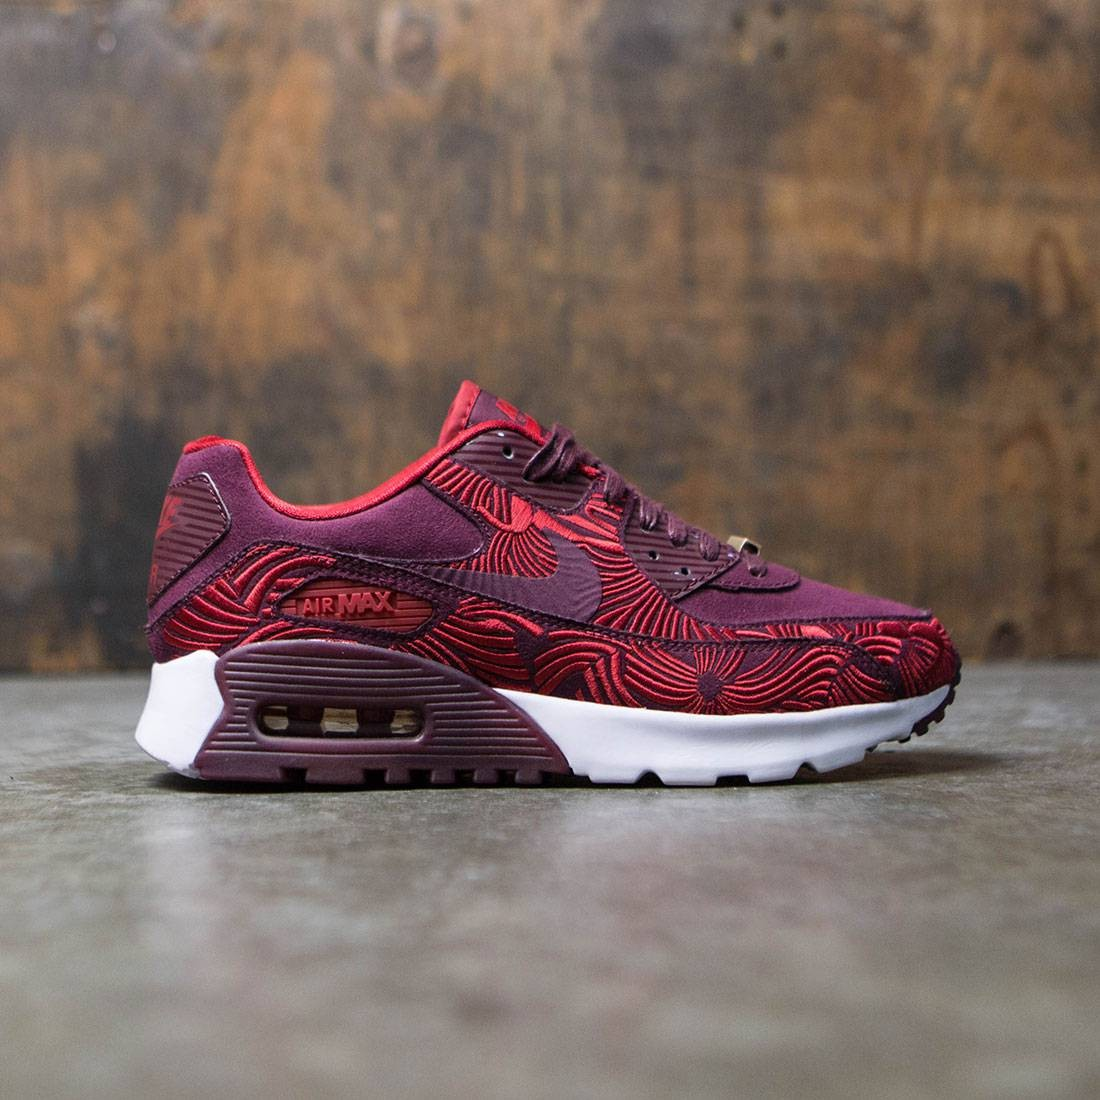 buy popular fb99d b4ed0 Nike Women W Air Max 90 Ultra Lotc Qs Shanghai (maroon / night maroon / gym  red / night maroon)